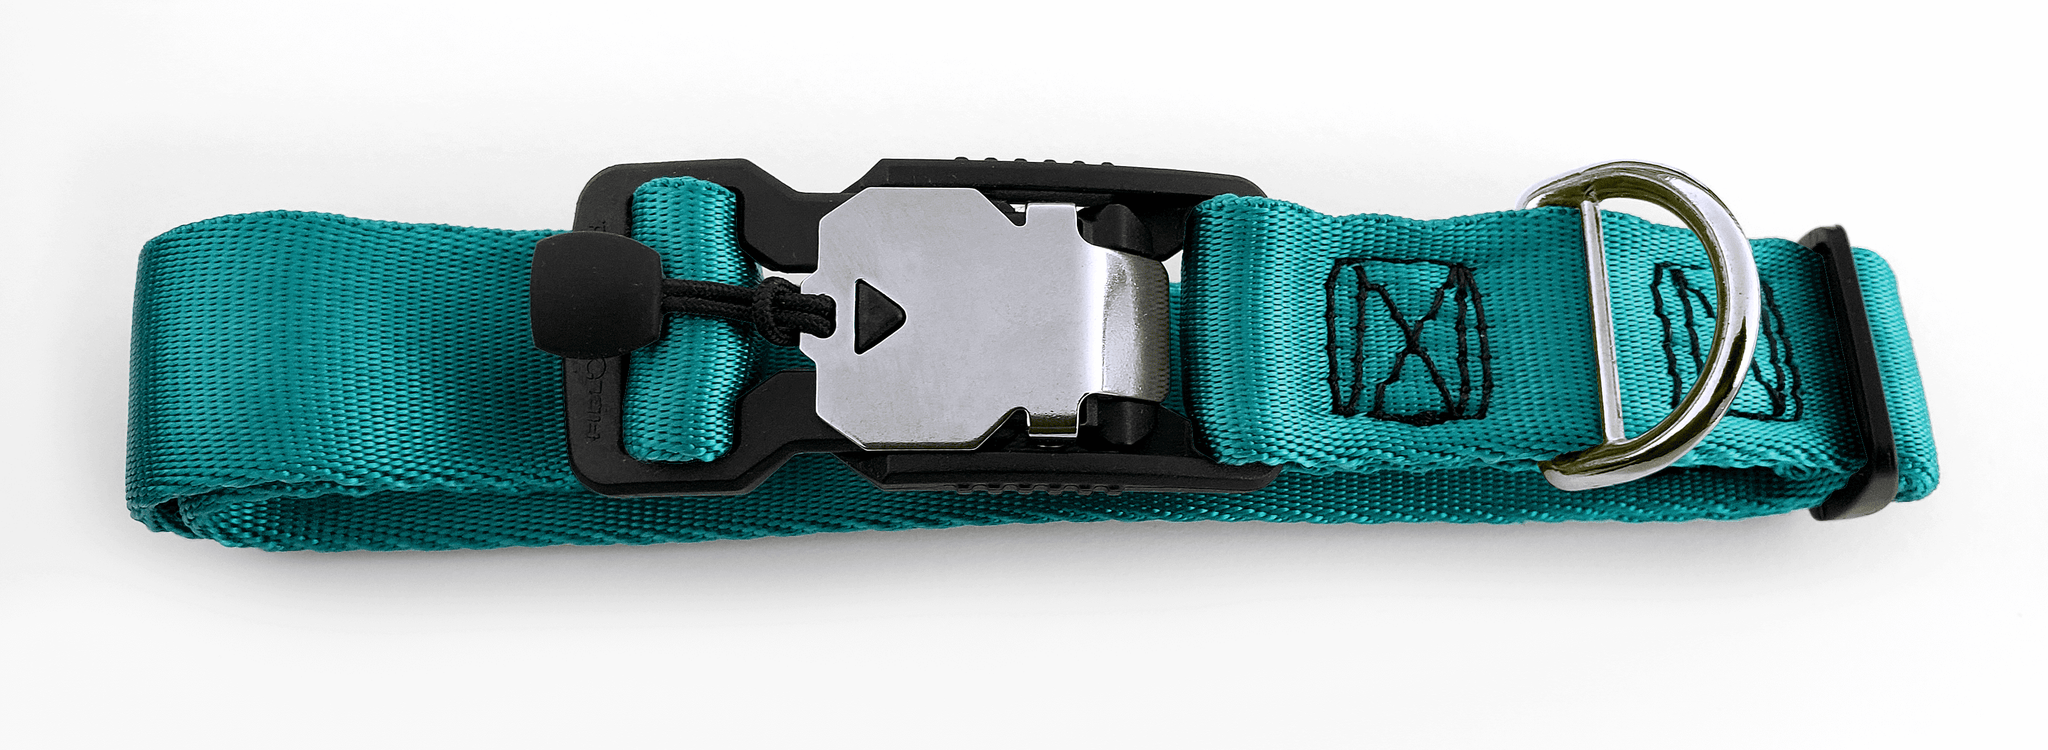 Magnetic Locking Dog Safety Collar - Teal